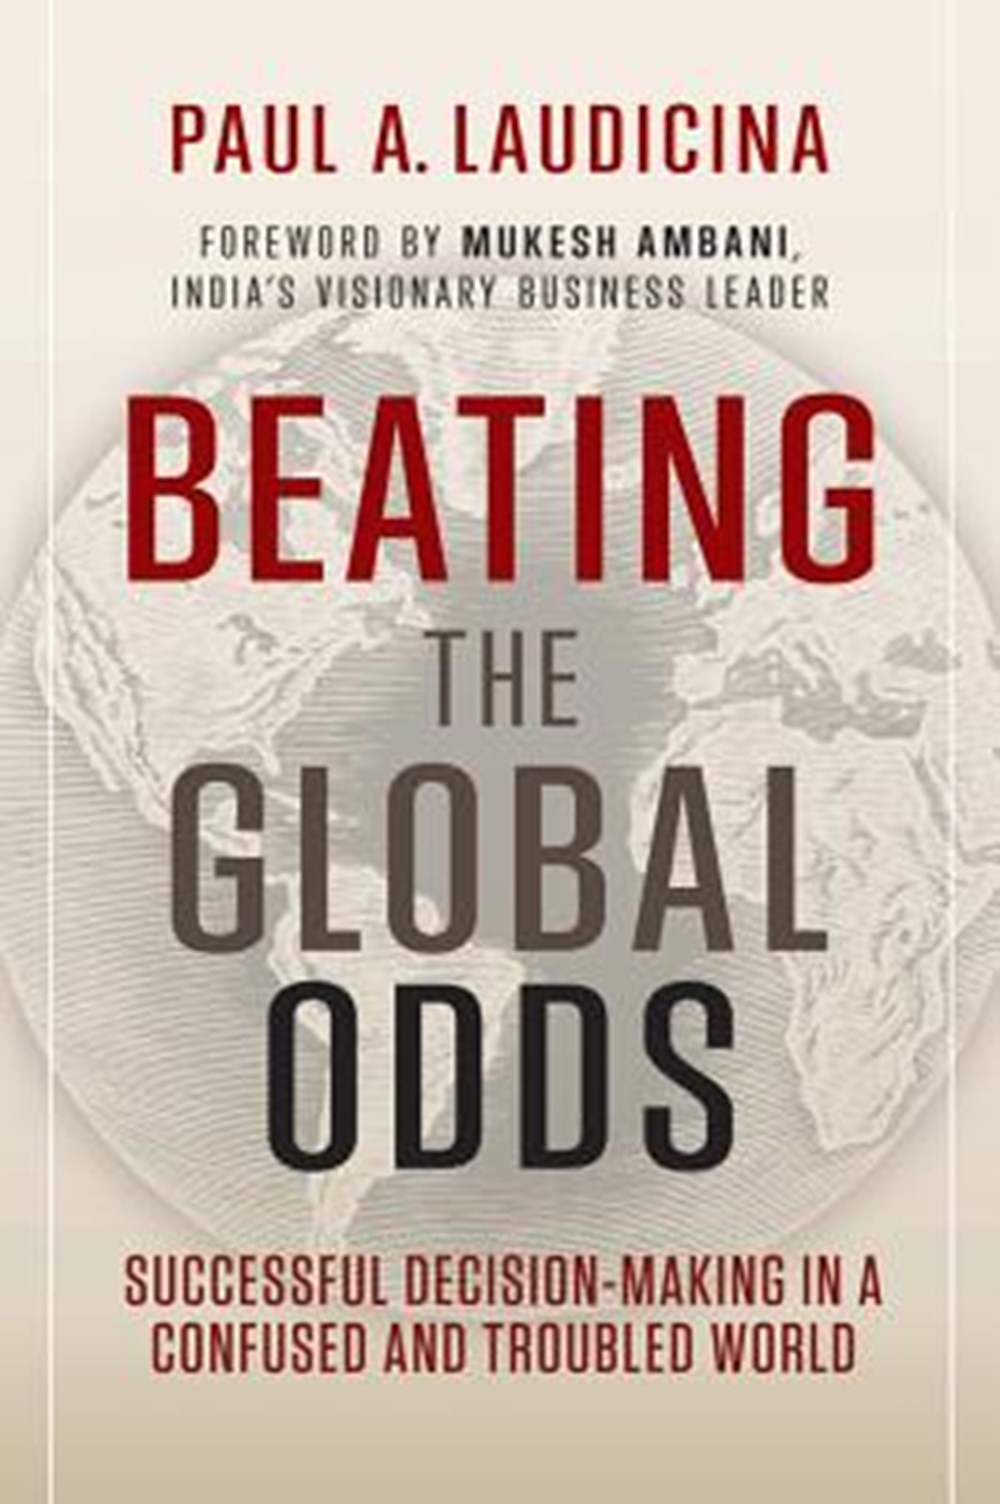 Beating the Global Odds Successful Decision-Making in a Confused and Troubled World